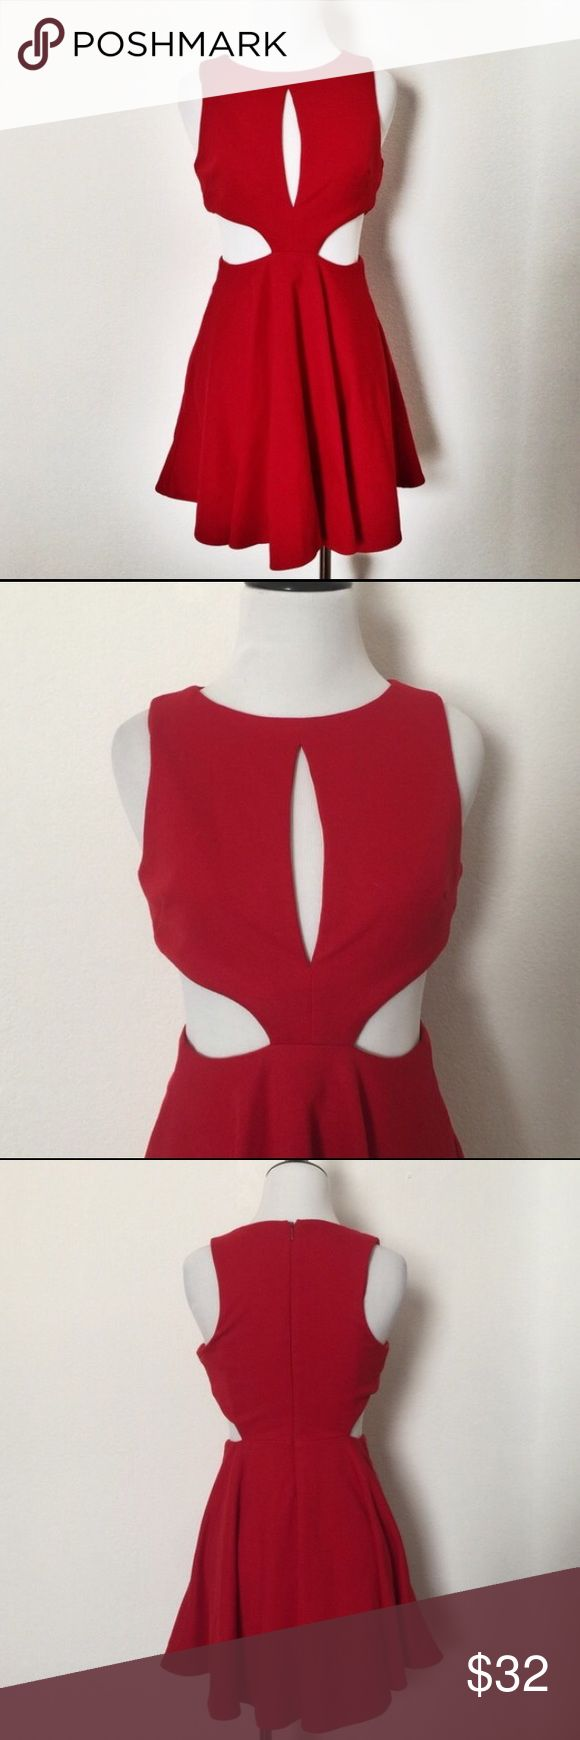 ASOS Cutout Red Dress NWOT; never worn. Reposhing this beautiful and sexy ASOS cutout red dress. Fit just a tad too large on me, unfortunately. Perfect for a date night or a night out with the girls! Trying to earn what I paid for! ASOS Petite Dresses Midi